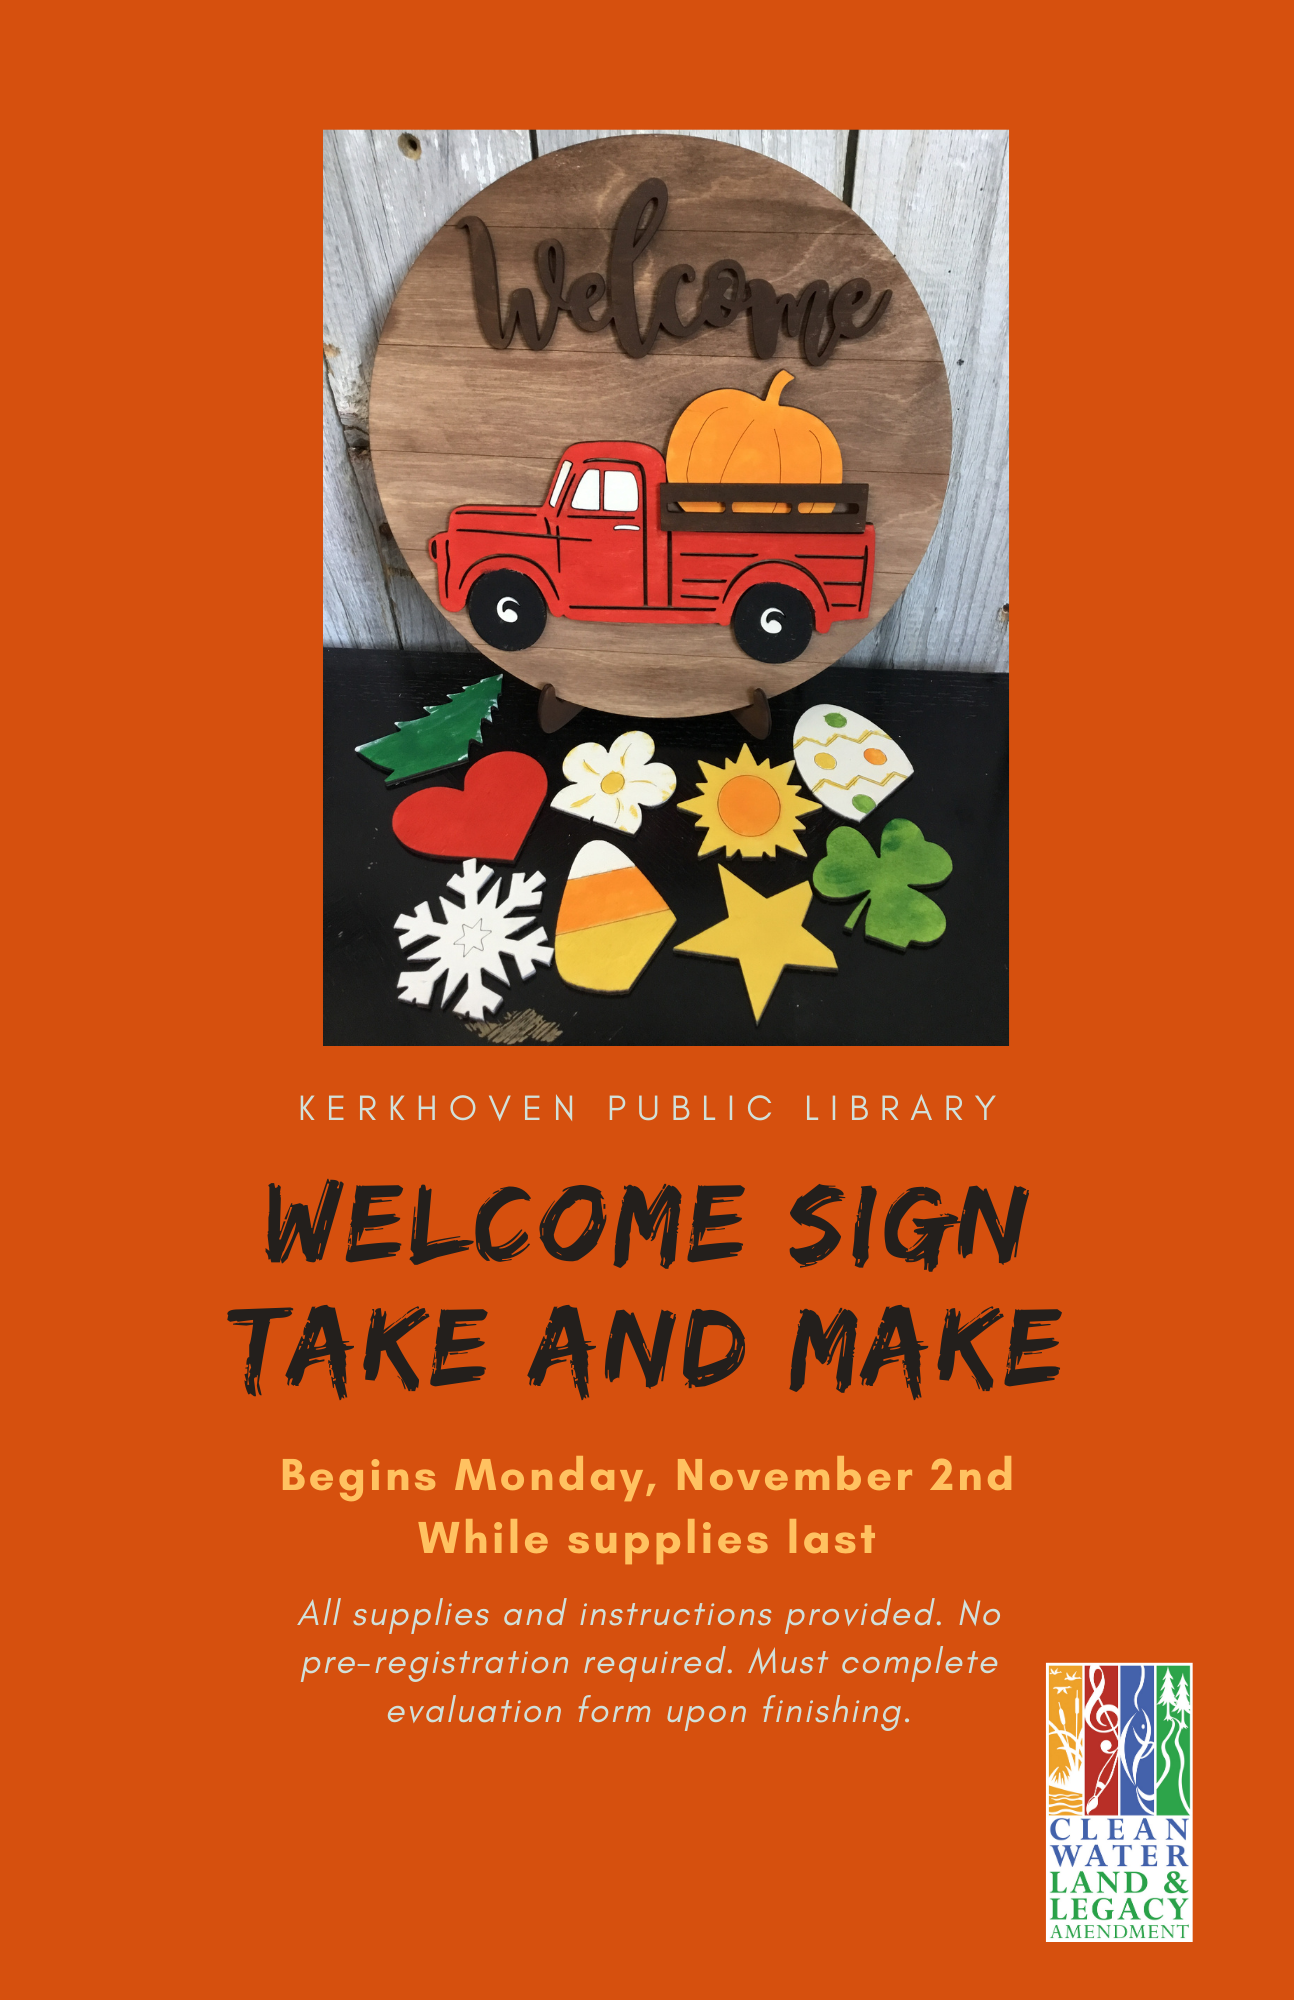 Beginning Monday, November 2 we will be offering a Welcome Sign Take and Make with 10 interchangeable pieces. All instructions provided. Call or stop by the library beginning the 2nd while supplies last. As this is a Legacy Amendment funded event, we are asking every participant to complete an evaluation form and email nicole.schmiesing@pioneerland.lib.mn.us a picture of the completed product.